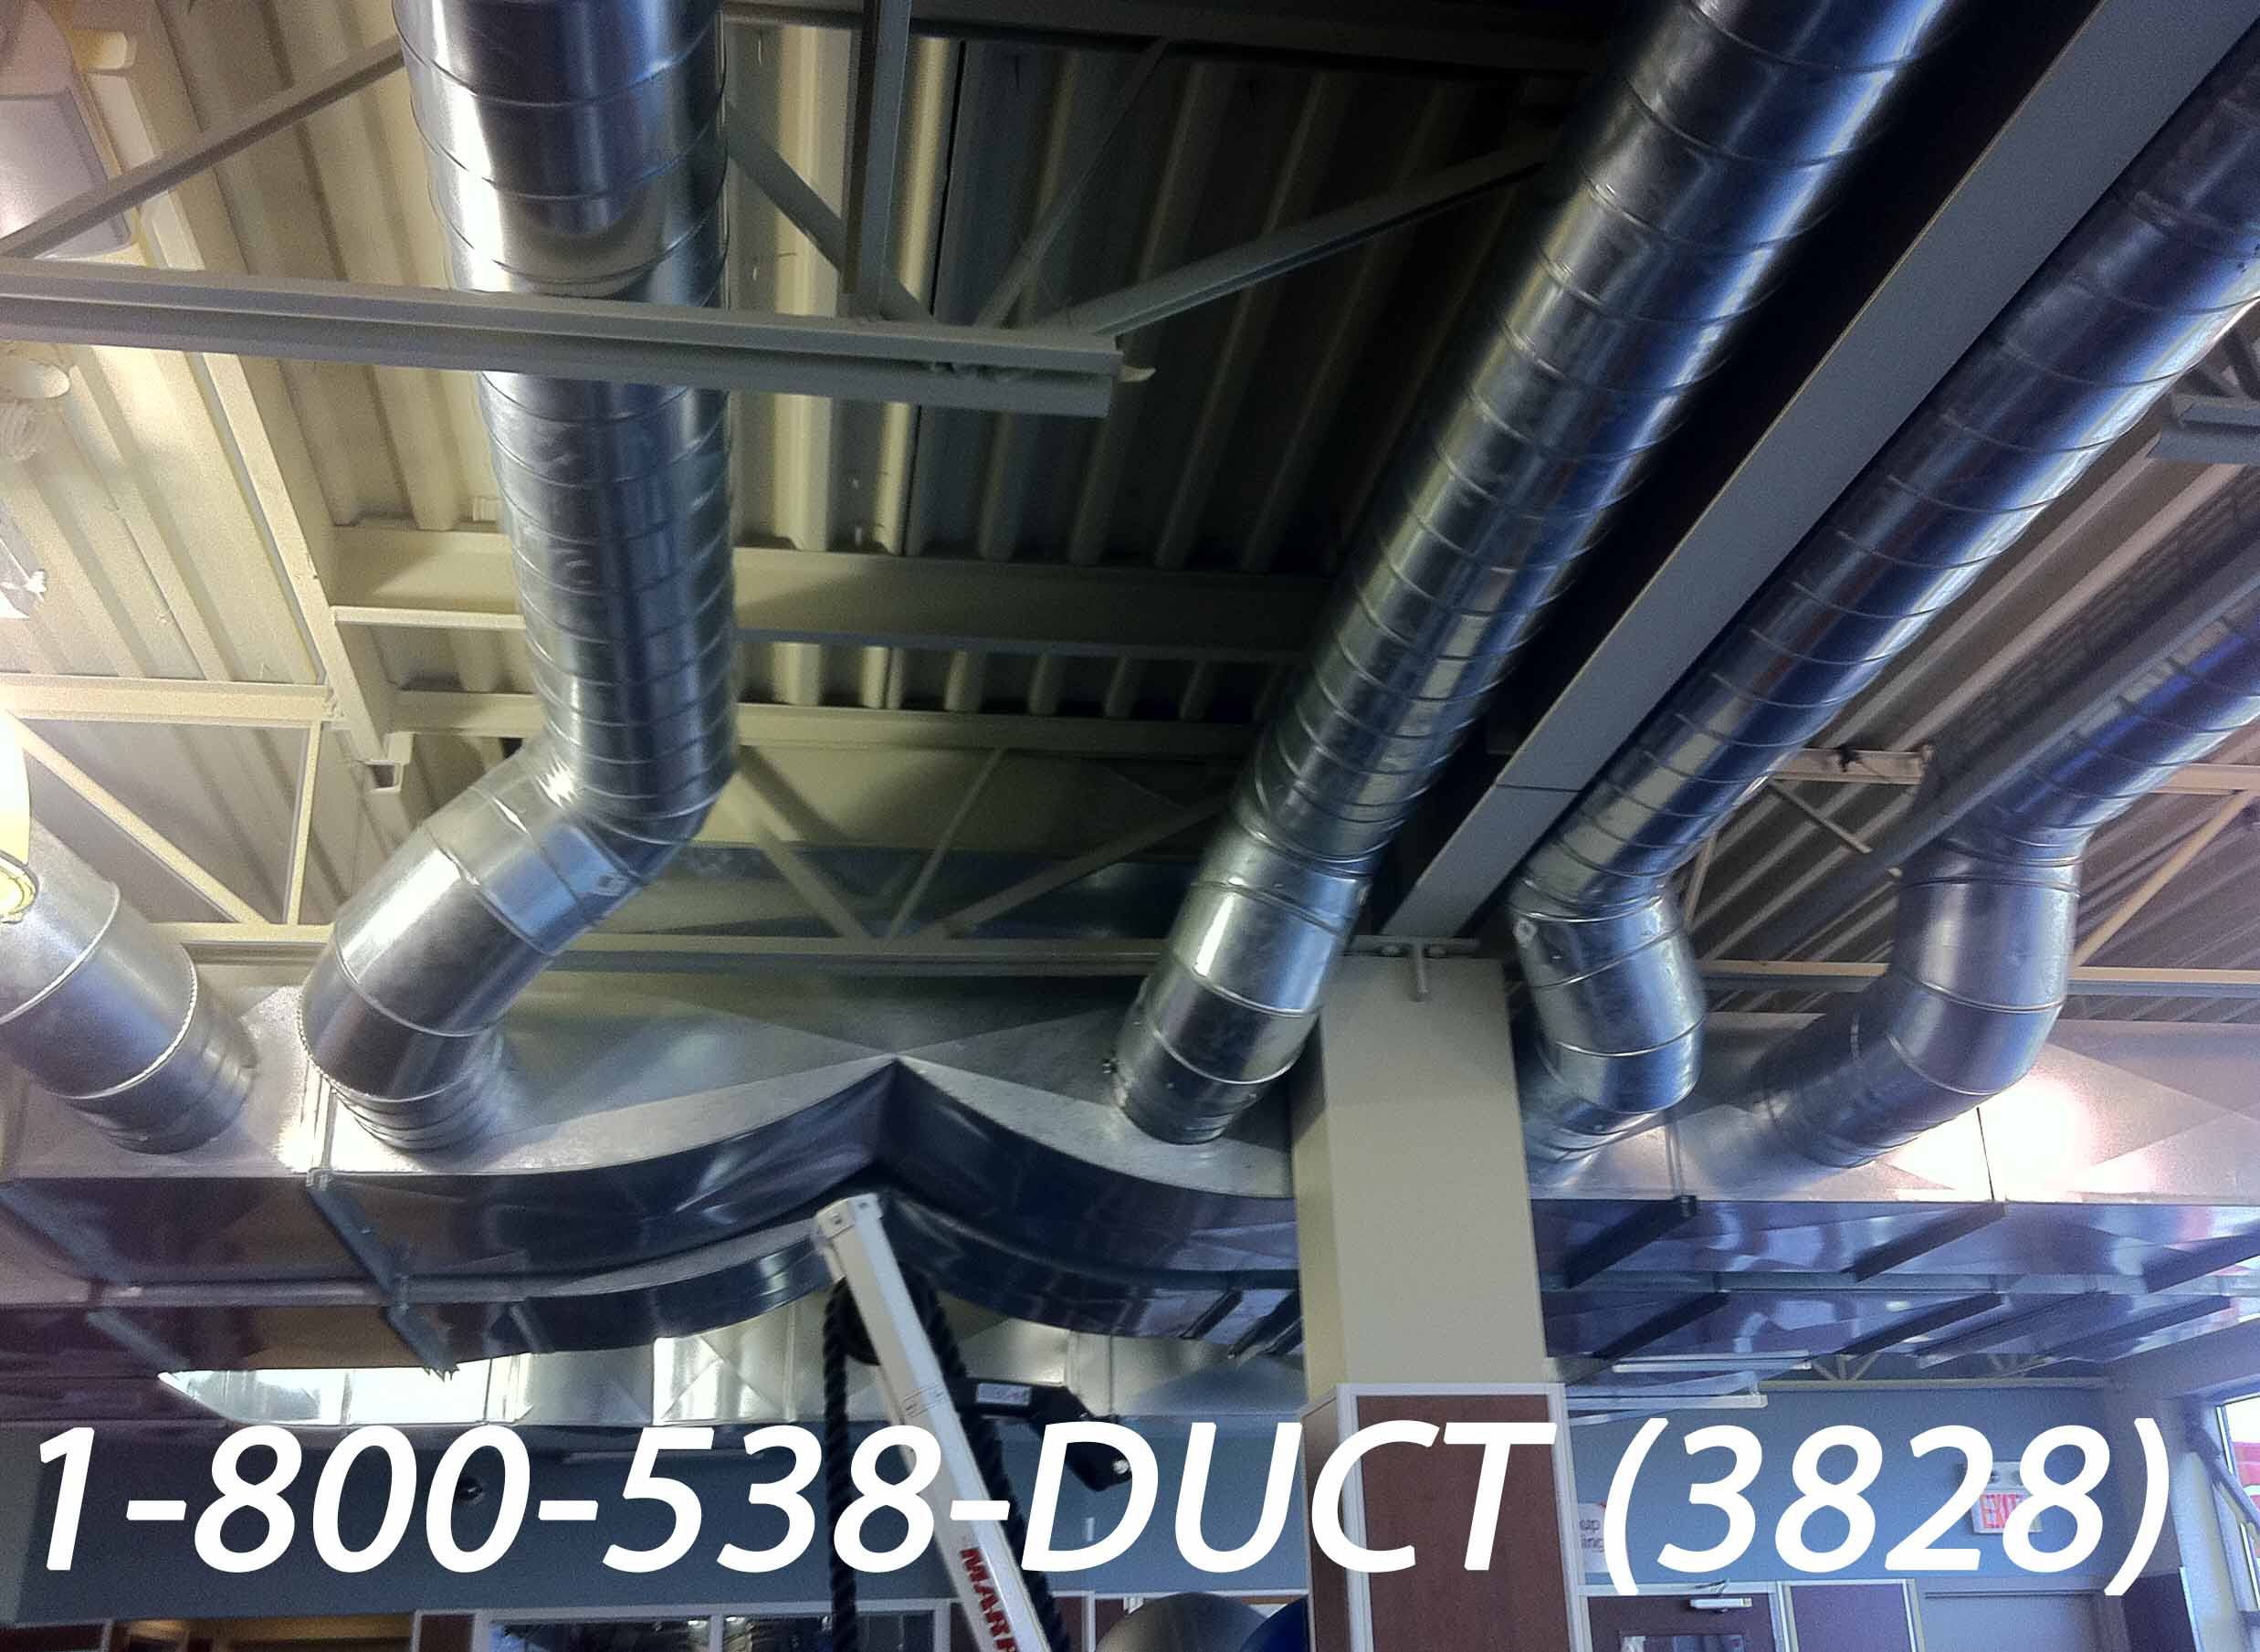 Dryer Duct Cleaning for High Rise Condominium Building Toronto #455D86